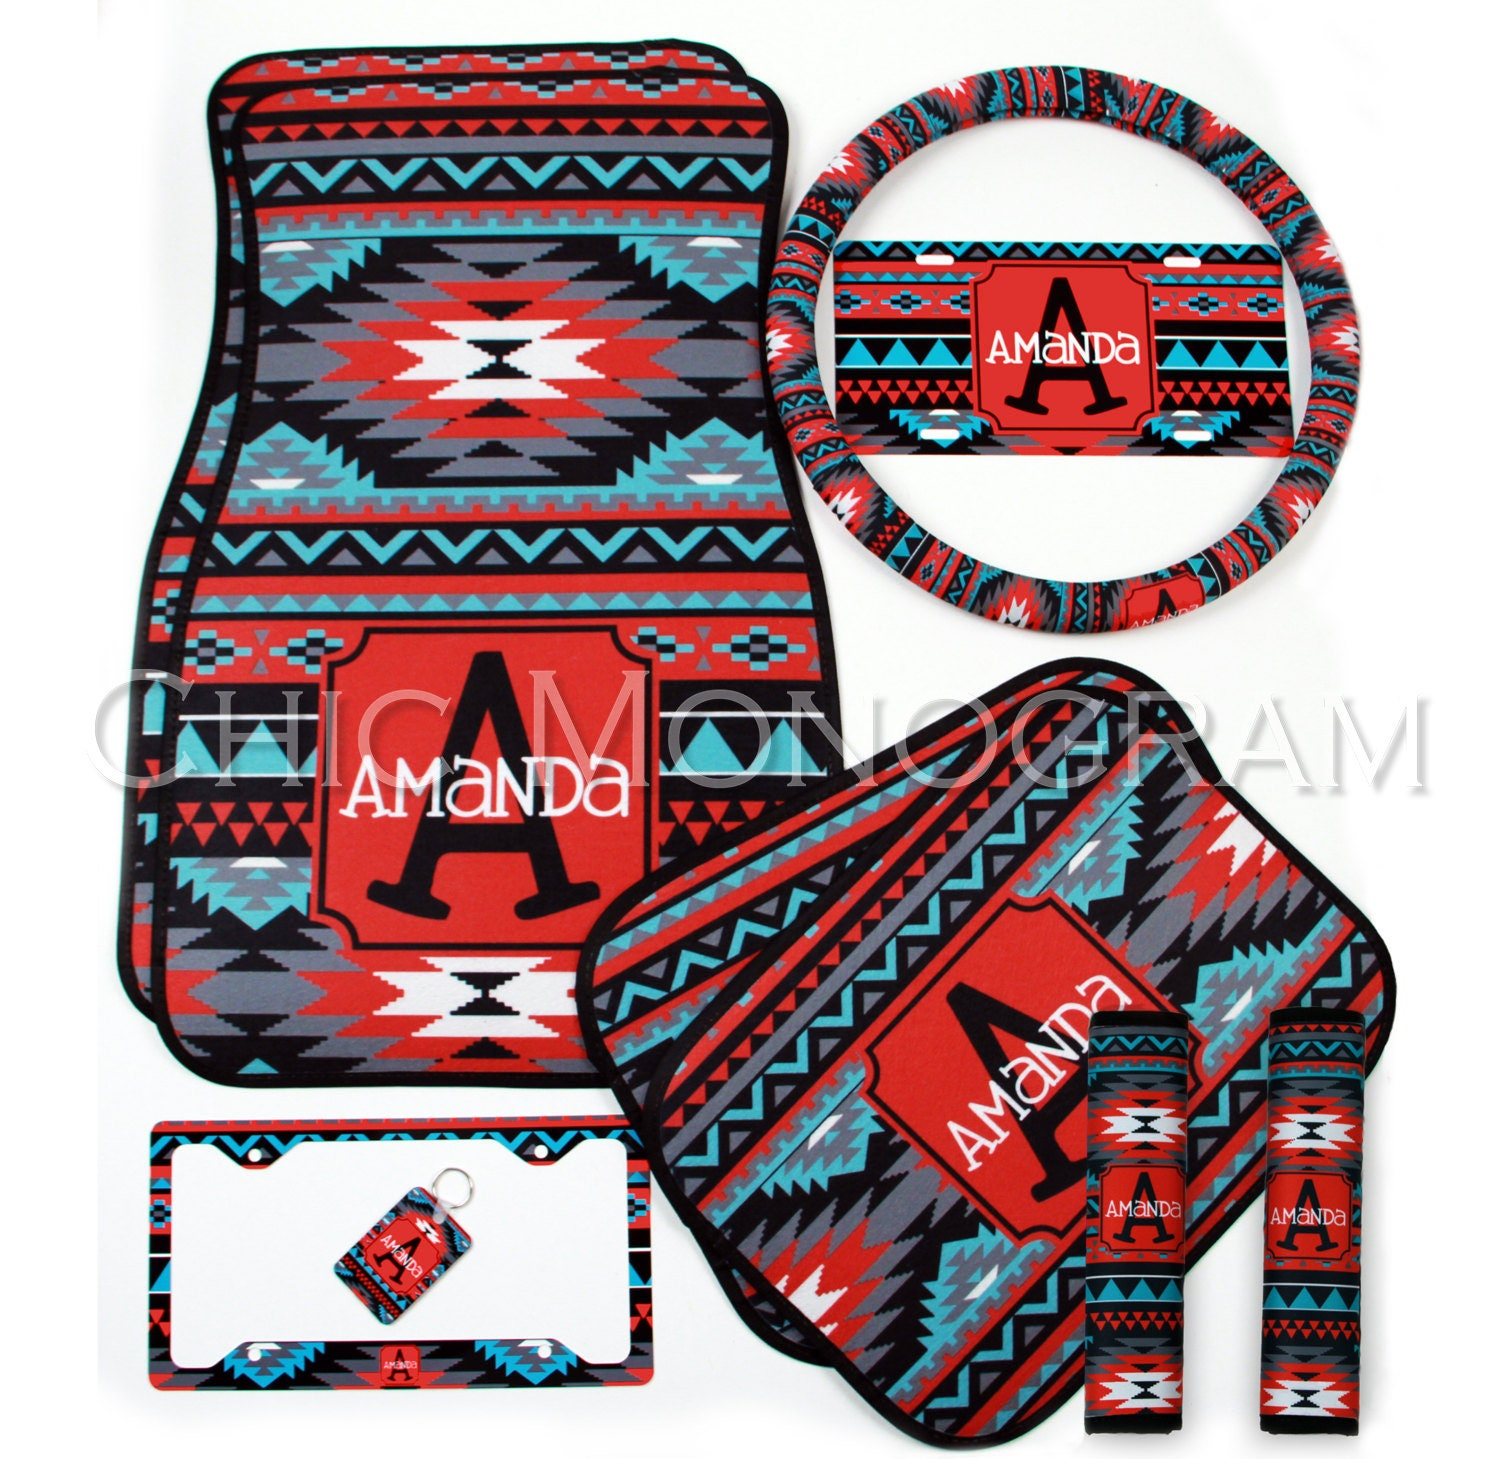 Monogrammed Floor Mats >> Aztec Tribal Car Accessories MIX AND MATCH Personalized Car